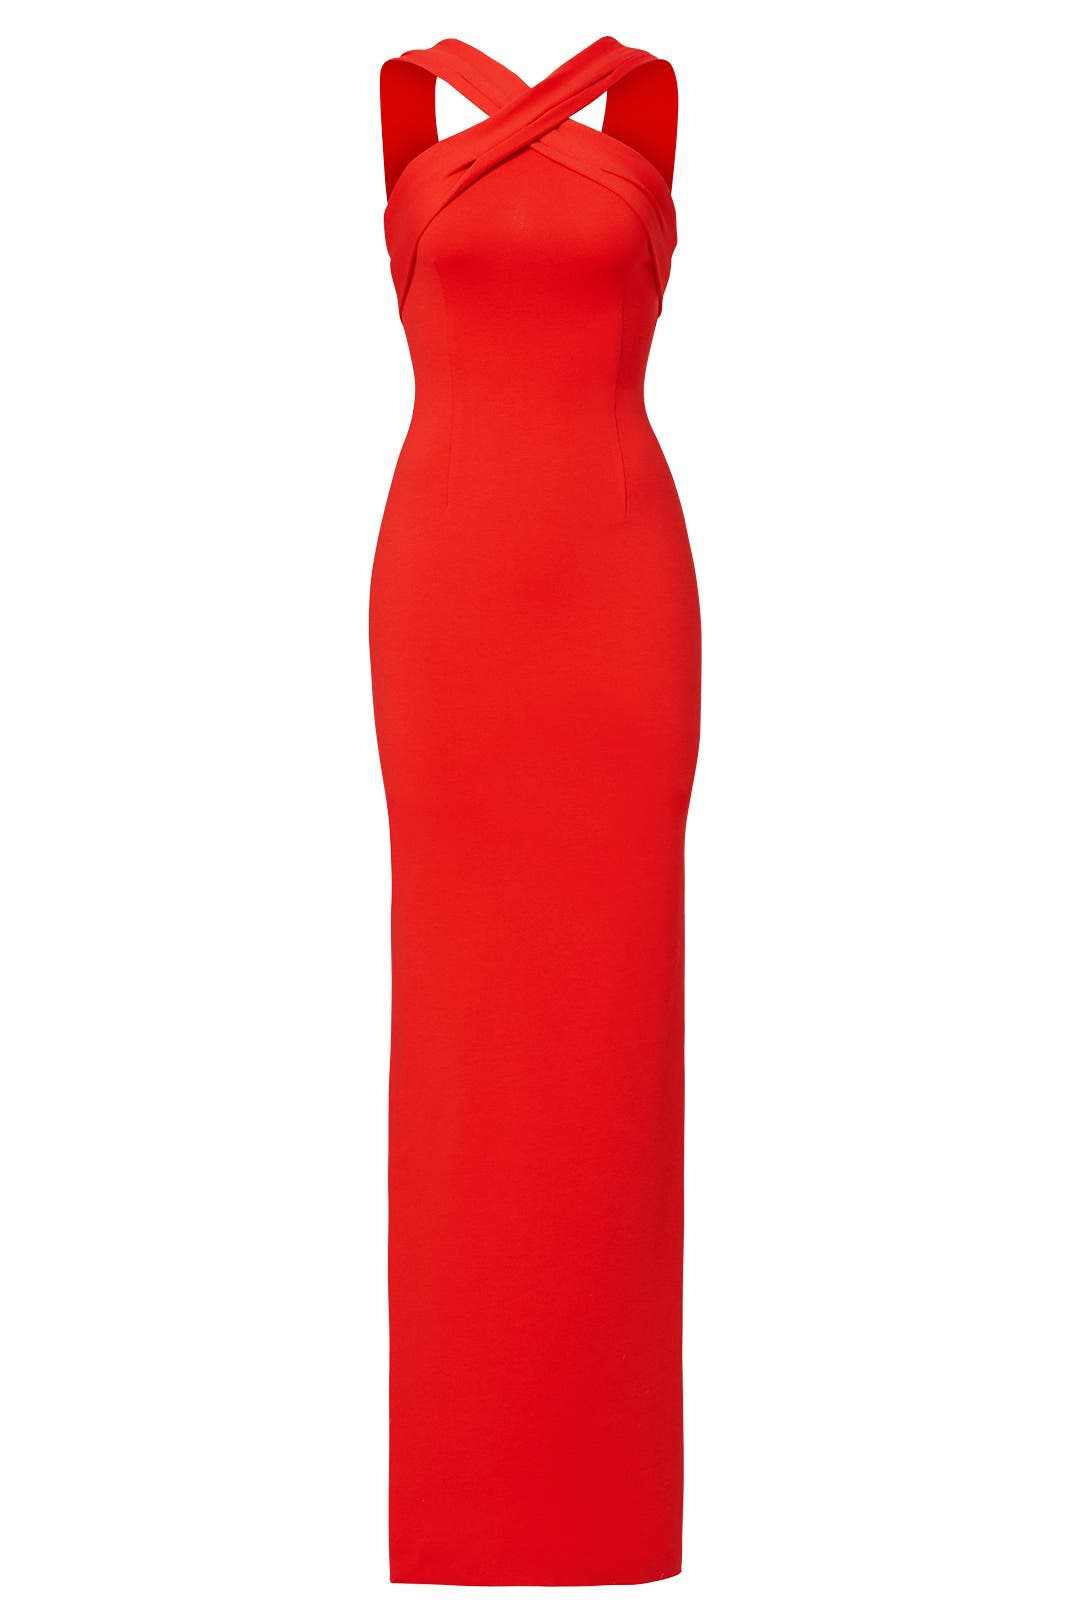 Red Halter Cross Gown by Nicholas for $80 - $100 | Rent the Runway